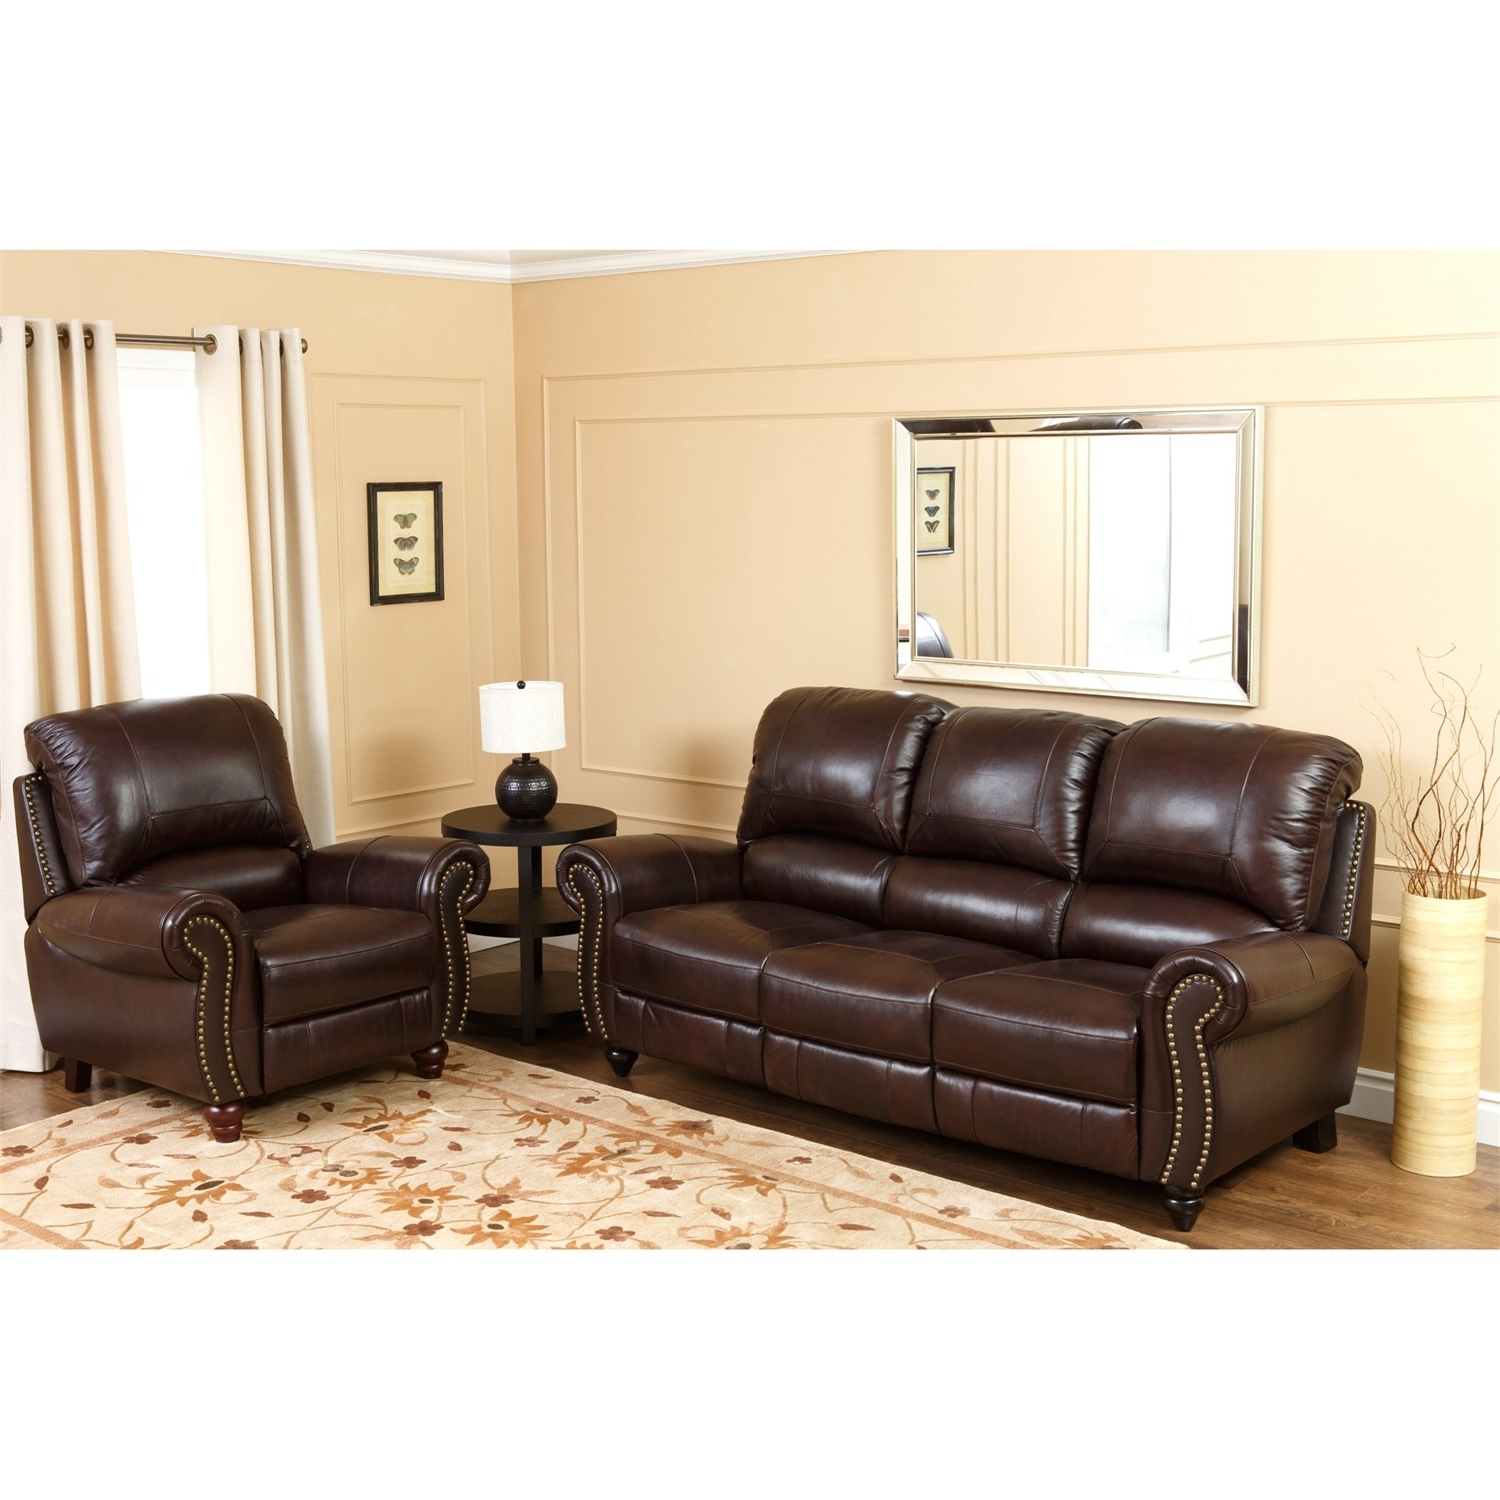 2018 Abbyson Living Ch 8857 Brg 3/1 Canterbury Leather Pushback Pertaining To Canterbury Leather Sofas (View 2 of 20)